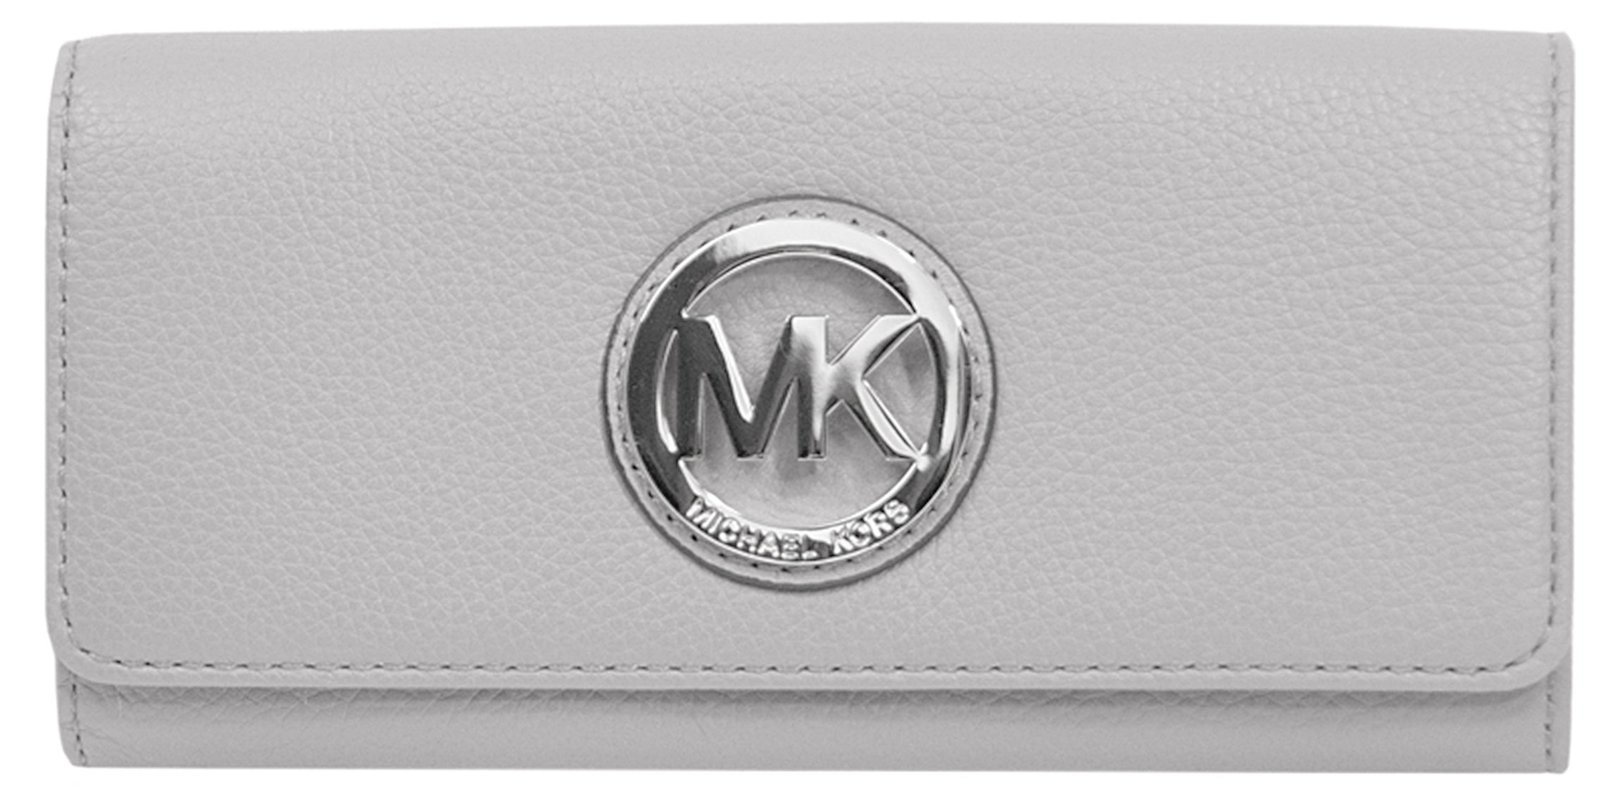 Primary image for Michael Kors Pearl Grey Pebbled Leather Fulton Carryall Wallet